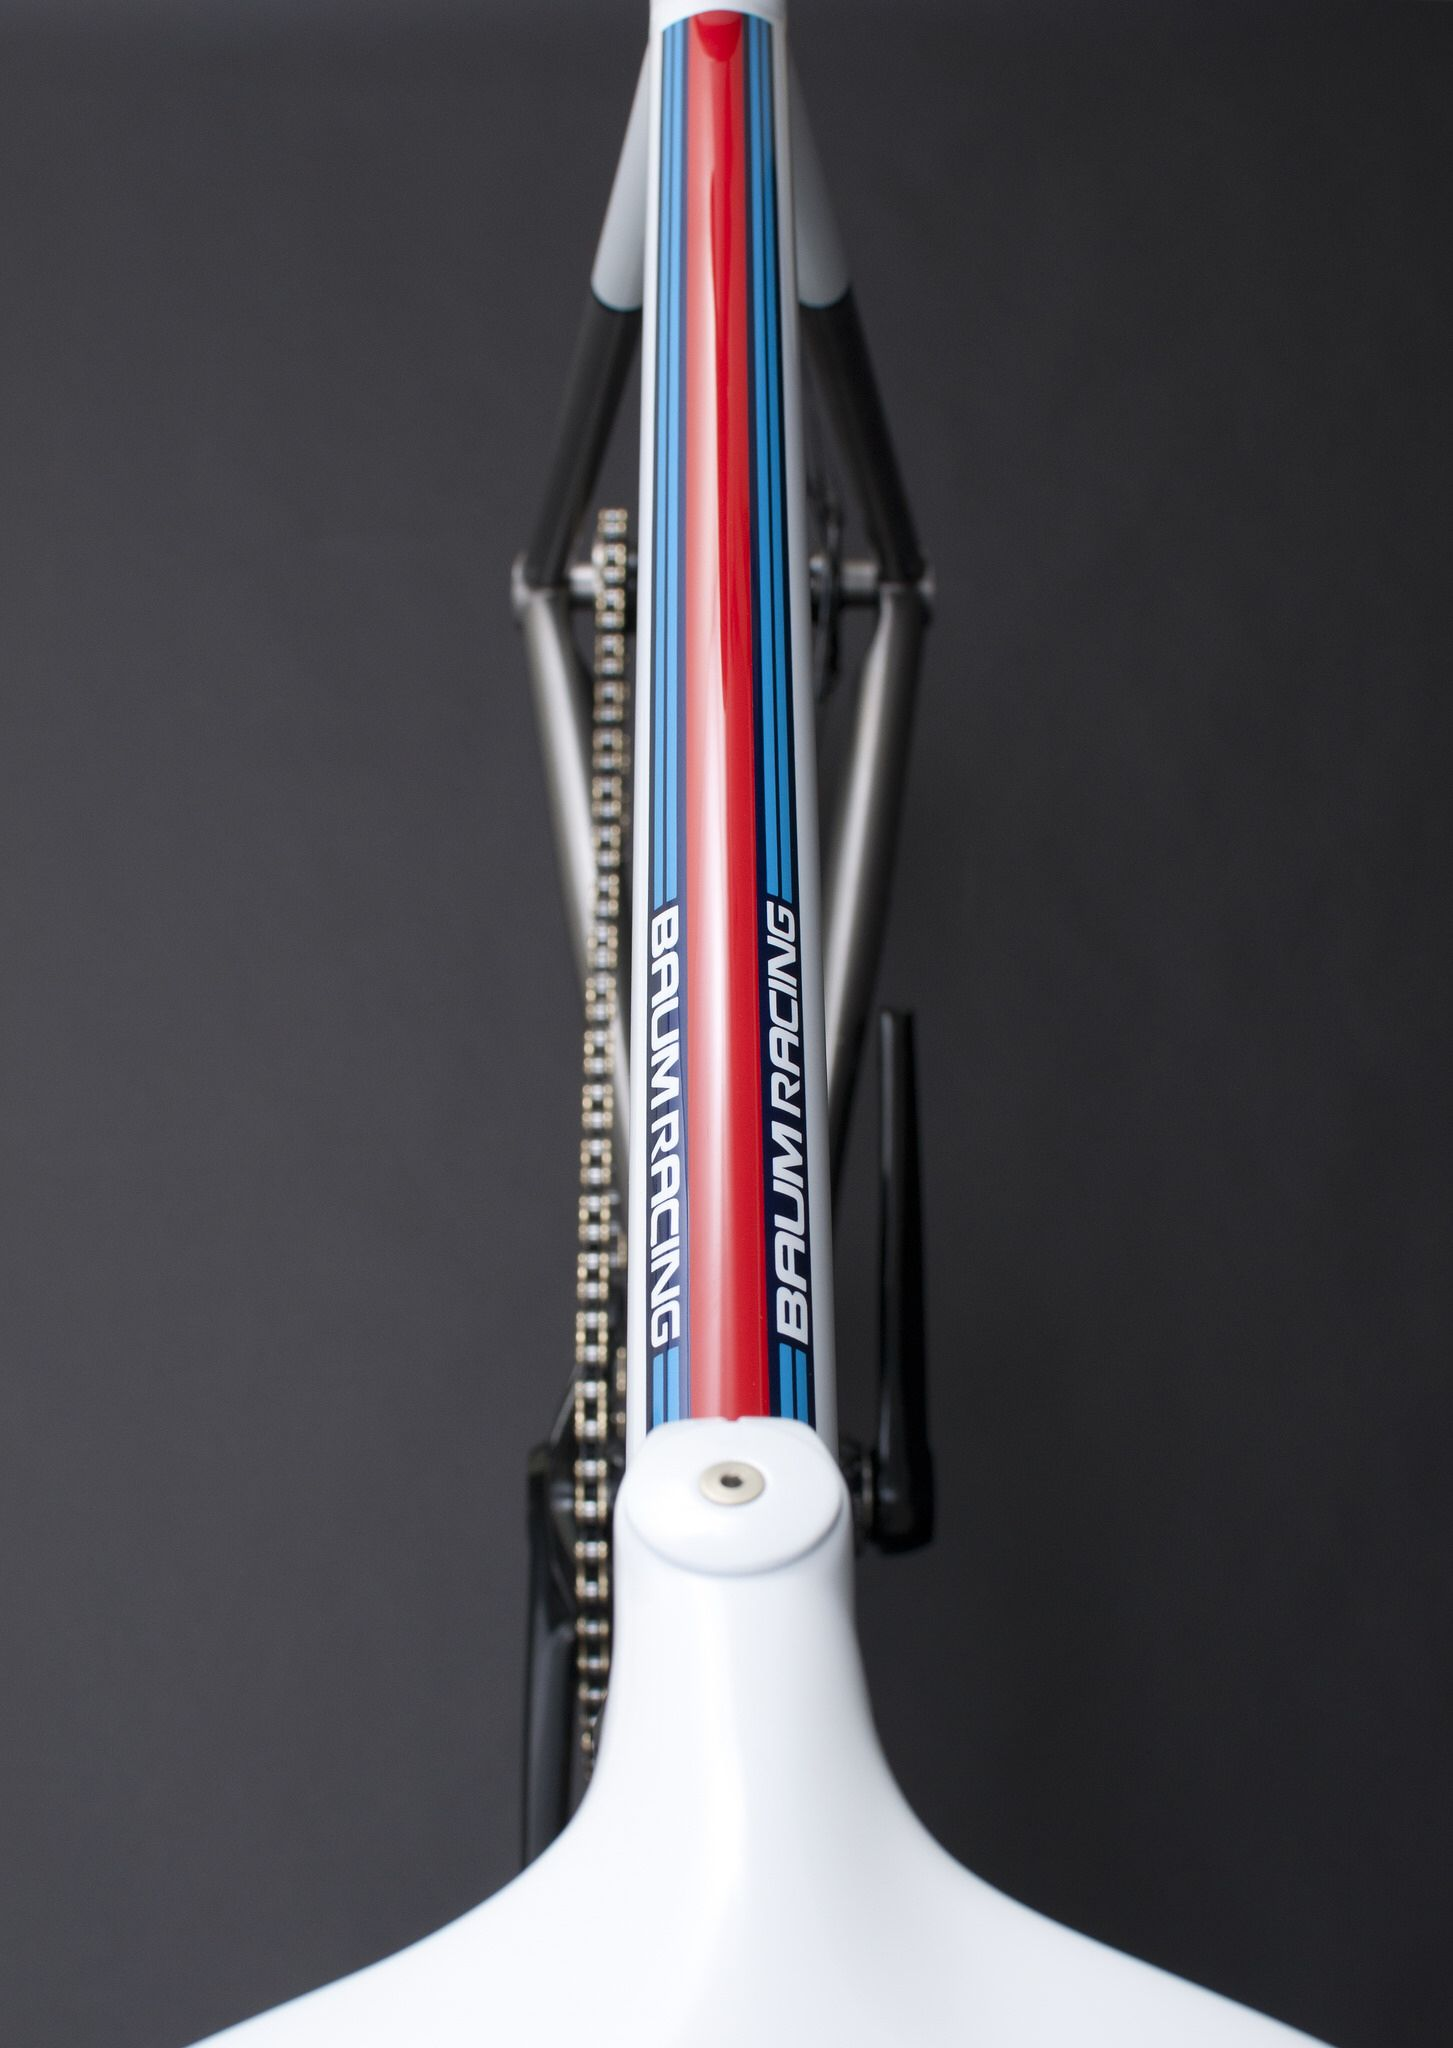 Limited - Baum Racing Martini, Corretto Track